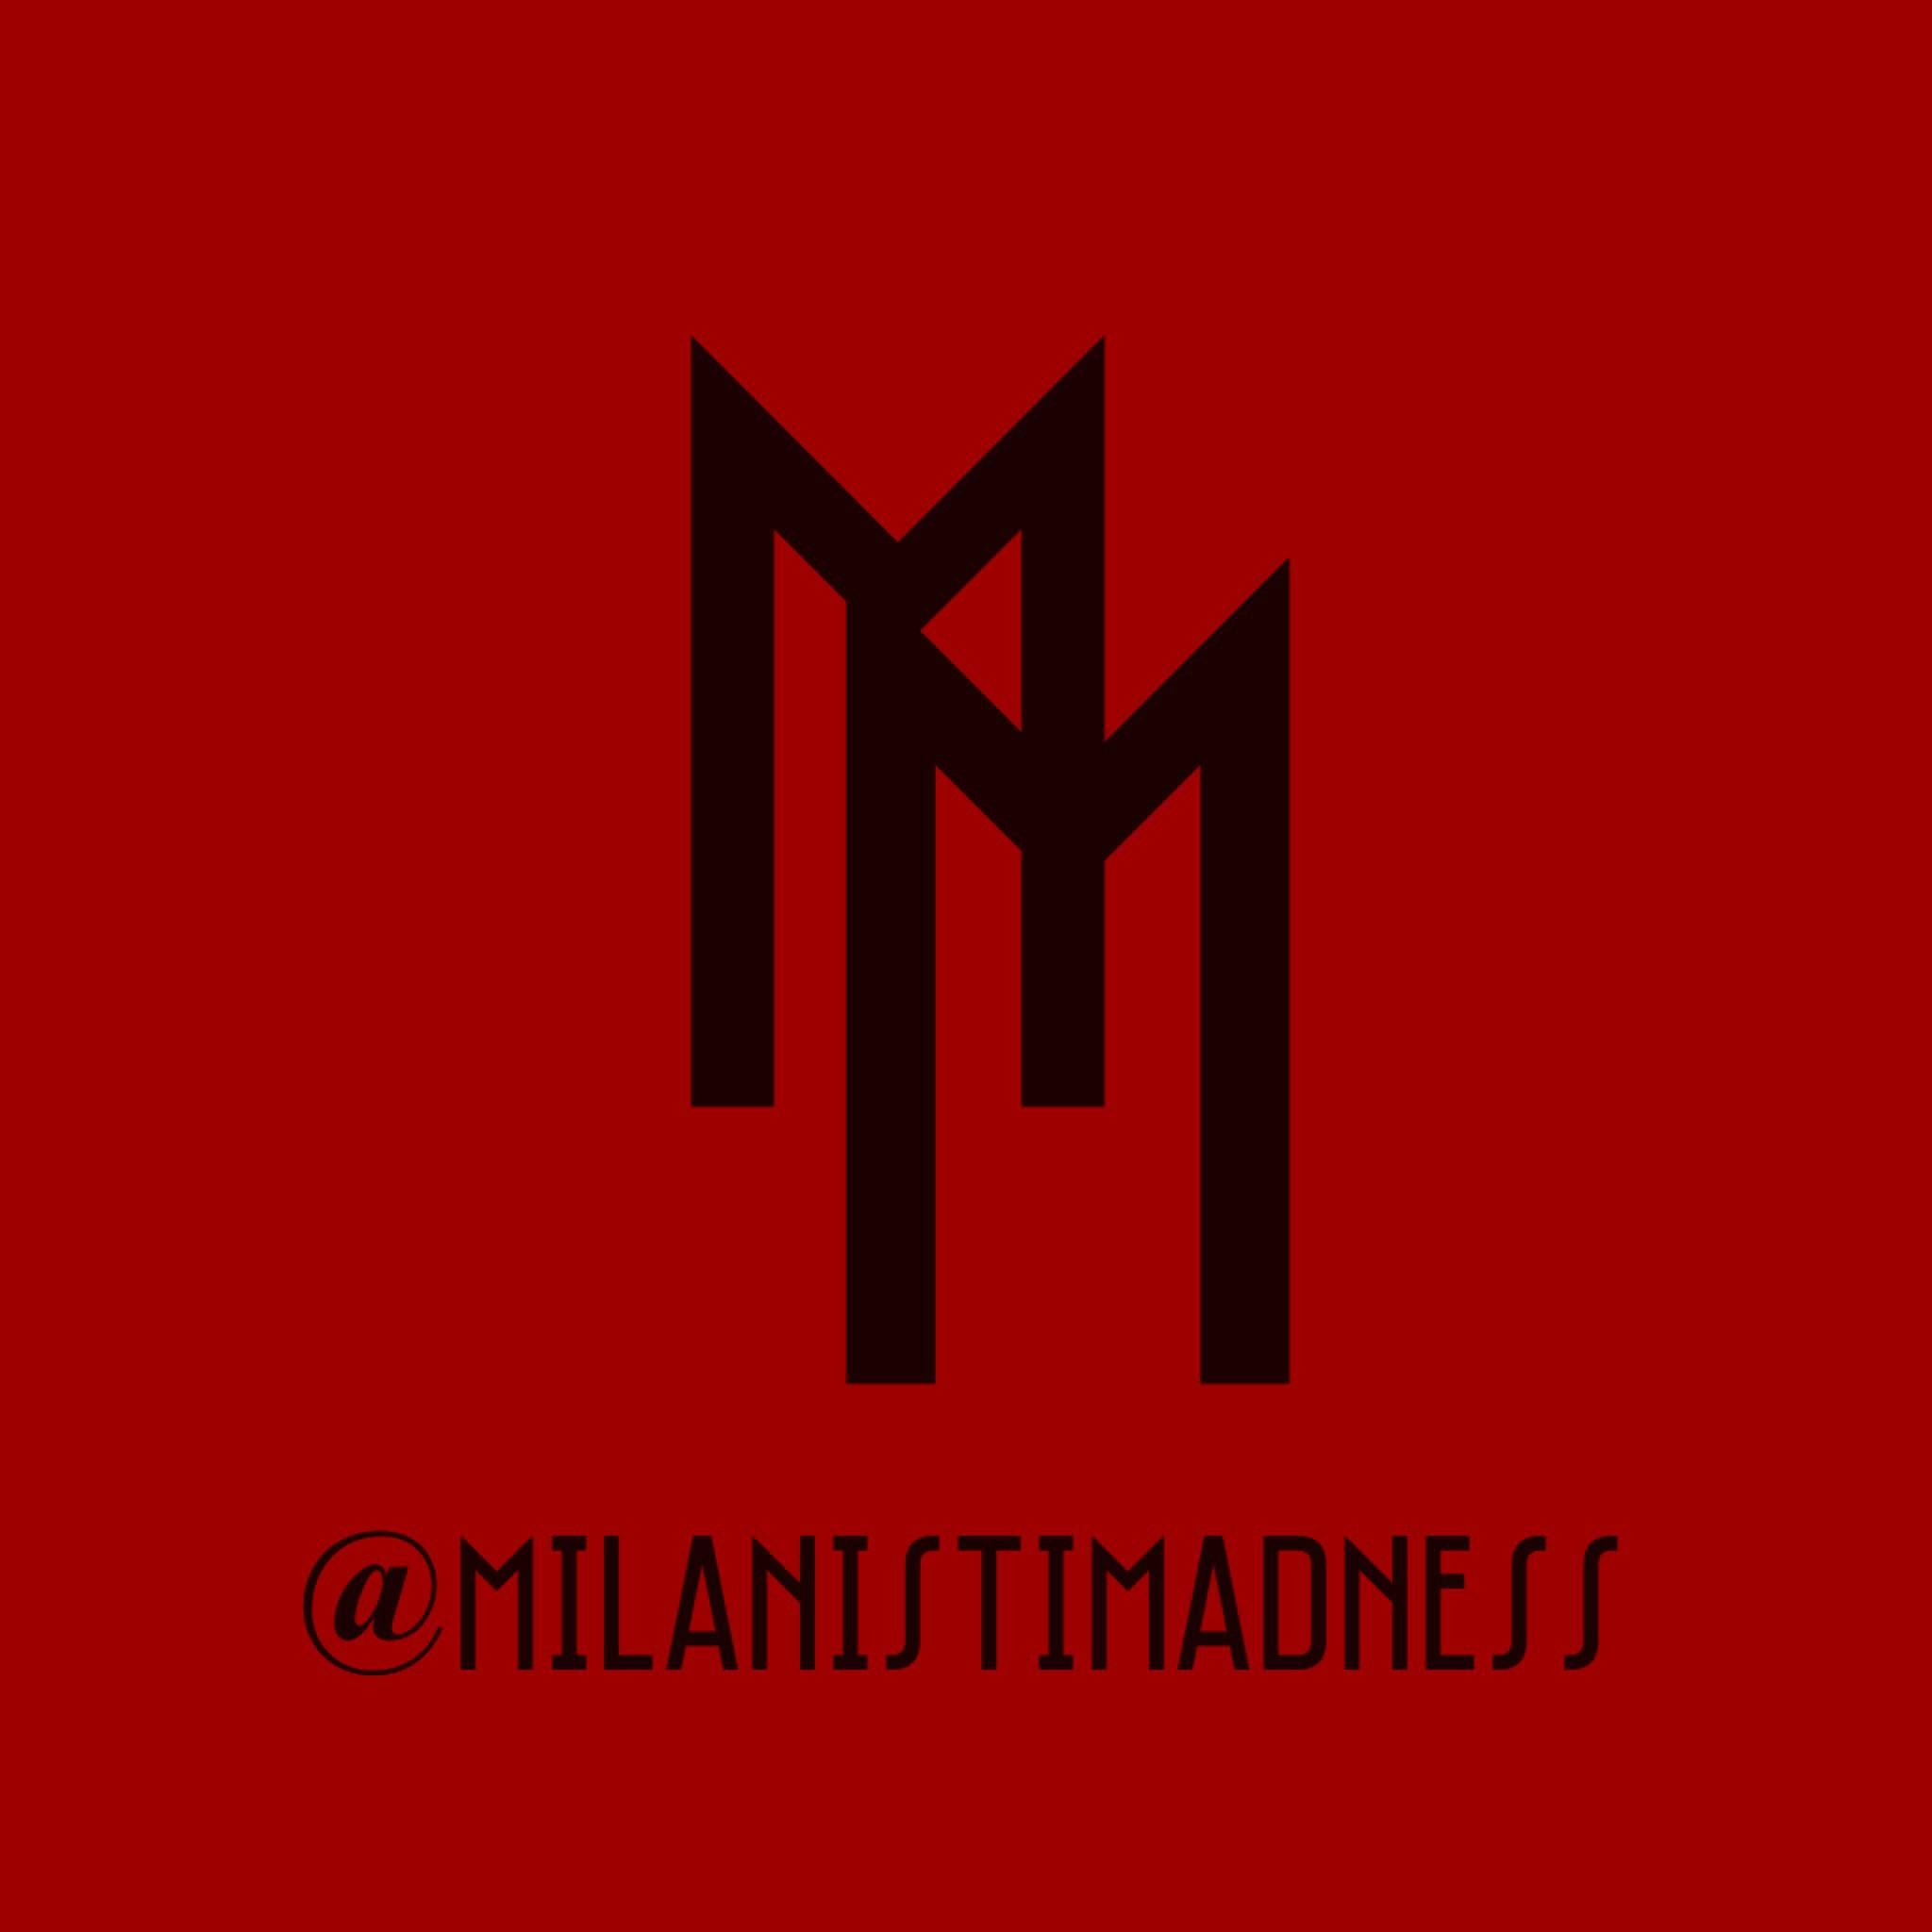 Follow @milanistimadness on IG and @milanistimad on Twitter